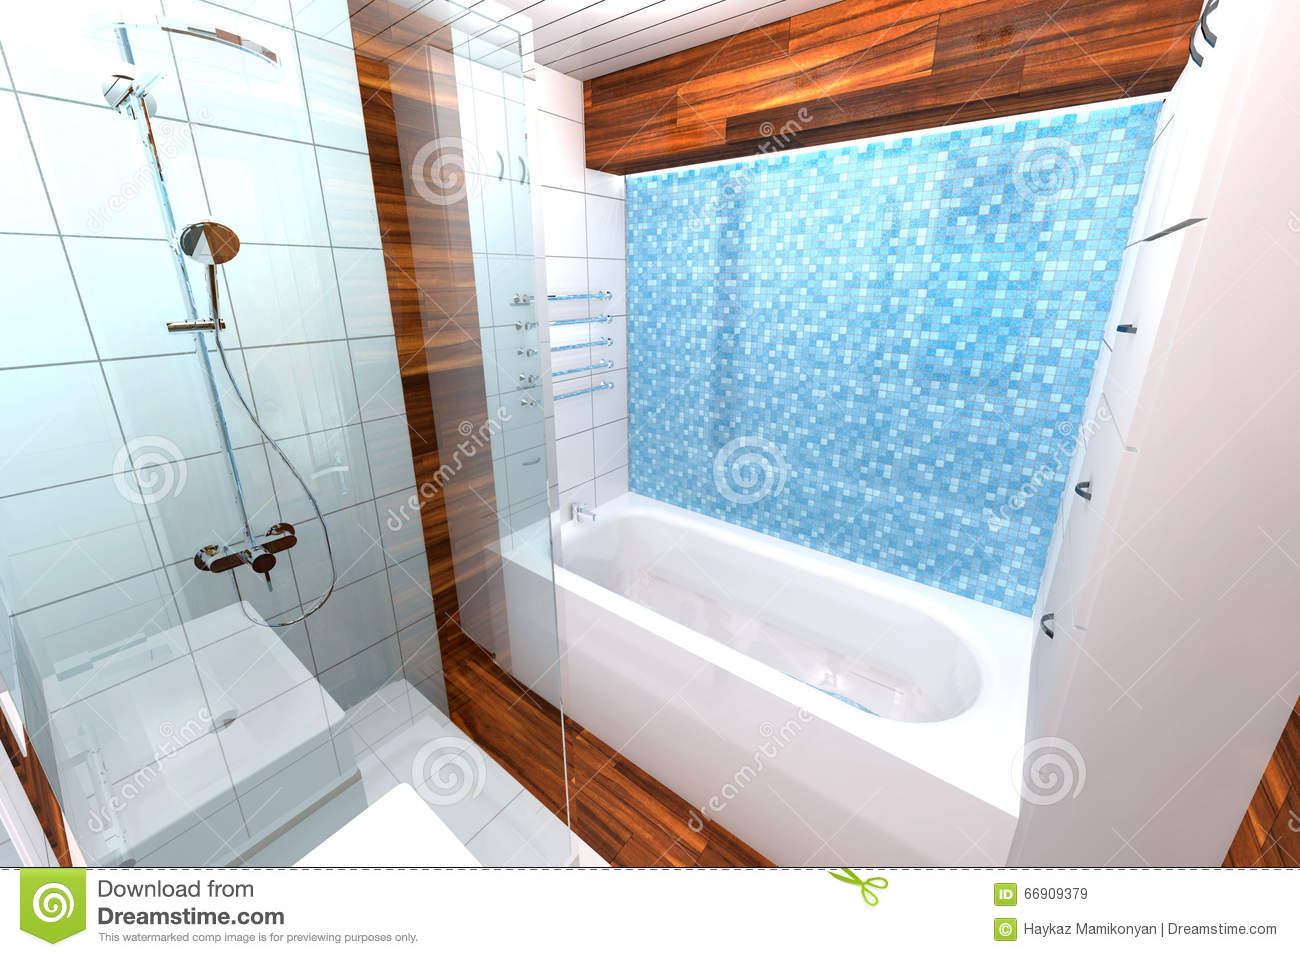 Bathroom interior design stock illustration image of for Bathroom designs drawing